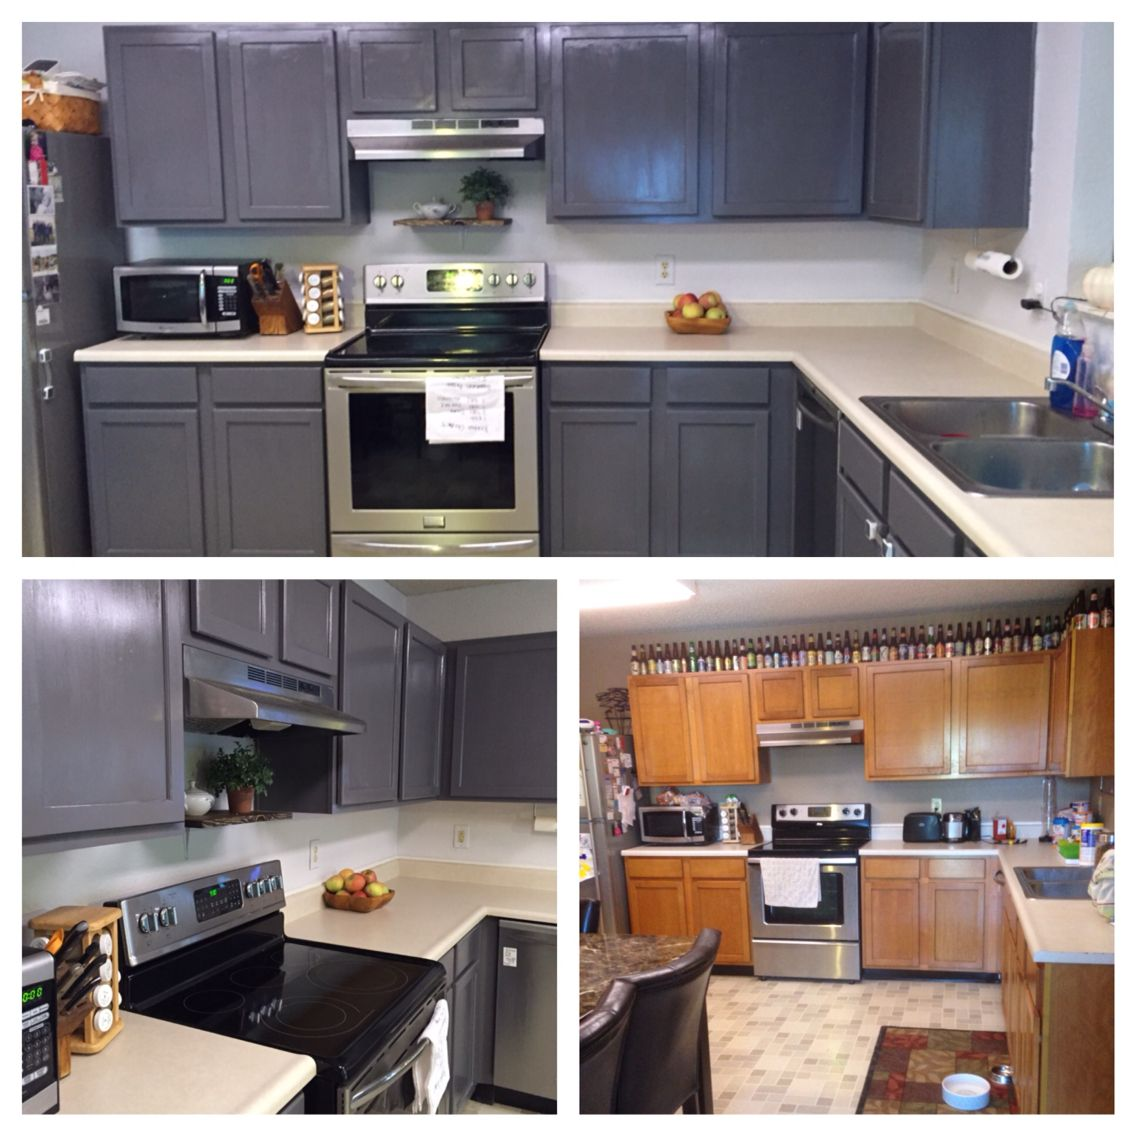 Best Paint For Kitchen Cabinets No Sanding: DIY Paint Kitchen Grey I Used General Finishes Milk Paint